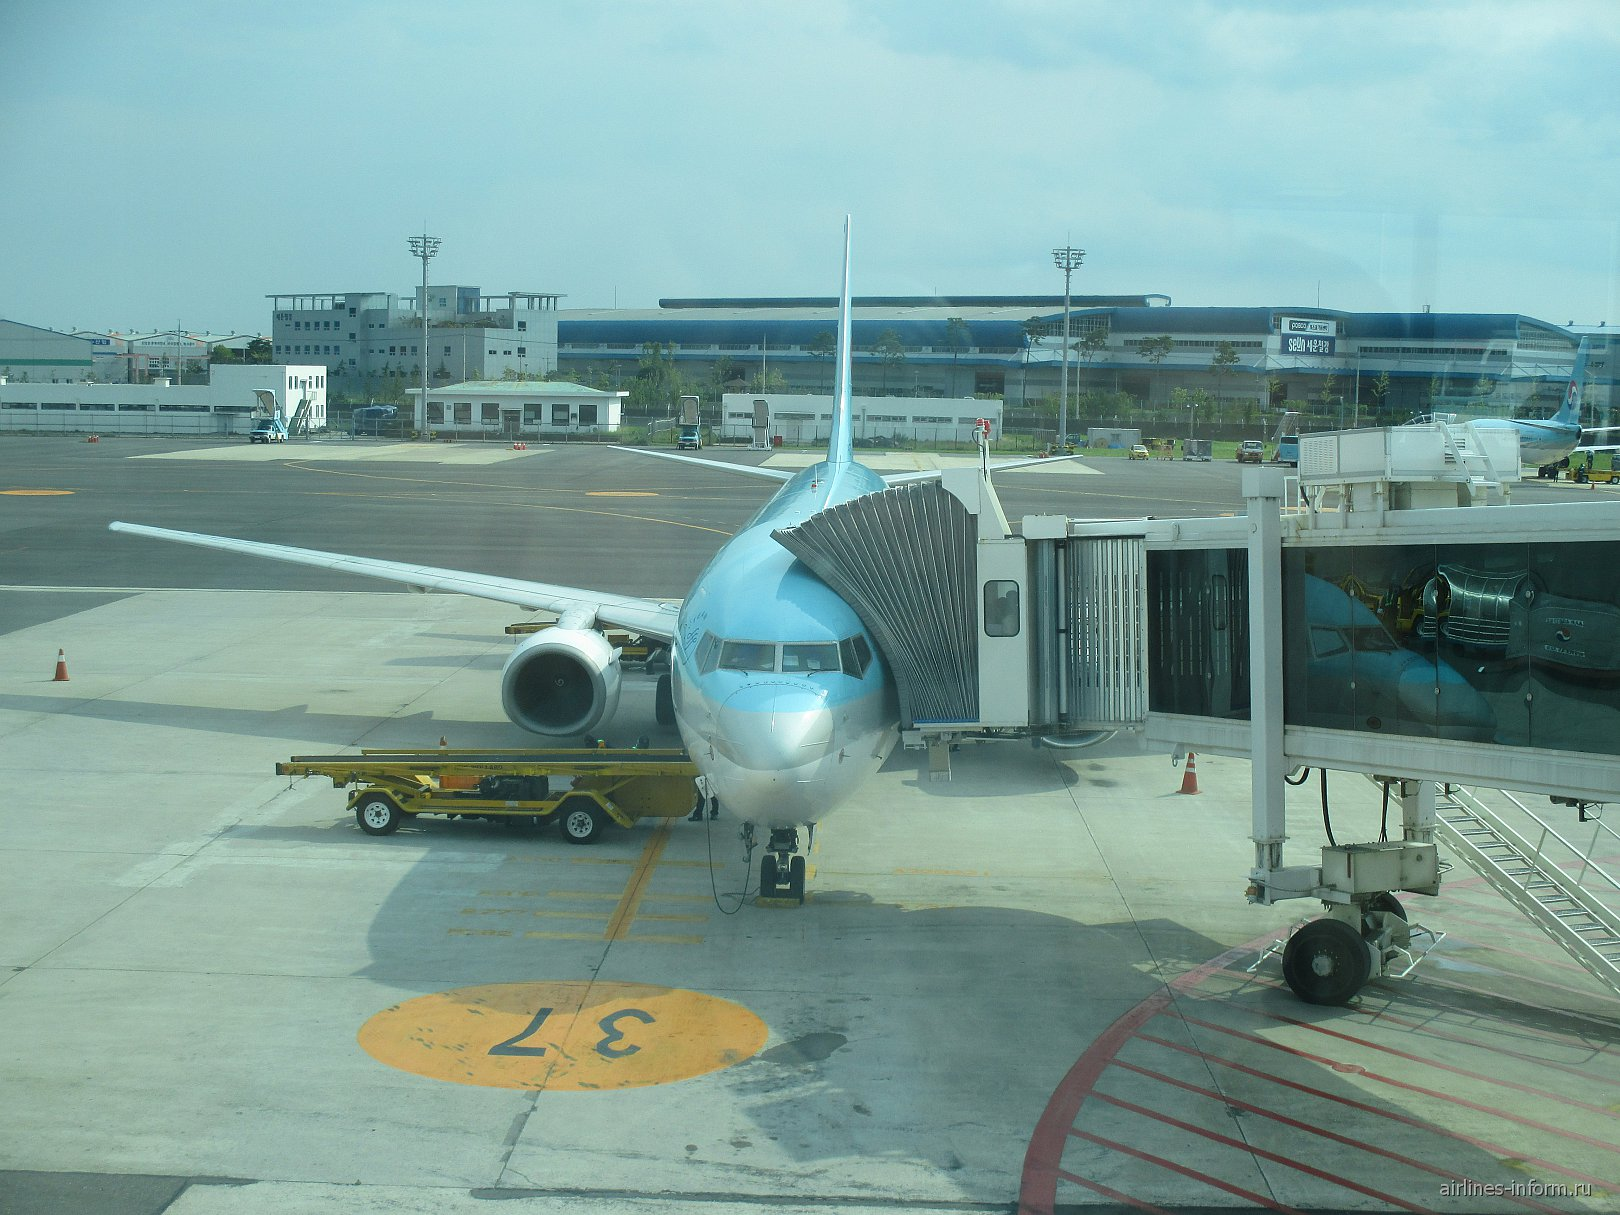 Отпуск в Корее. Часть 1 - Busan - Jeju с Korean Air на Boing-737-900